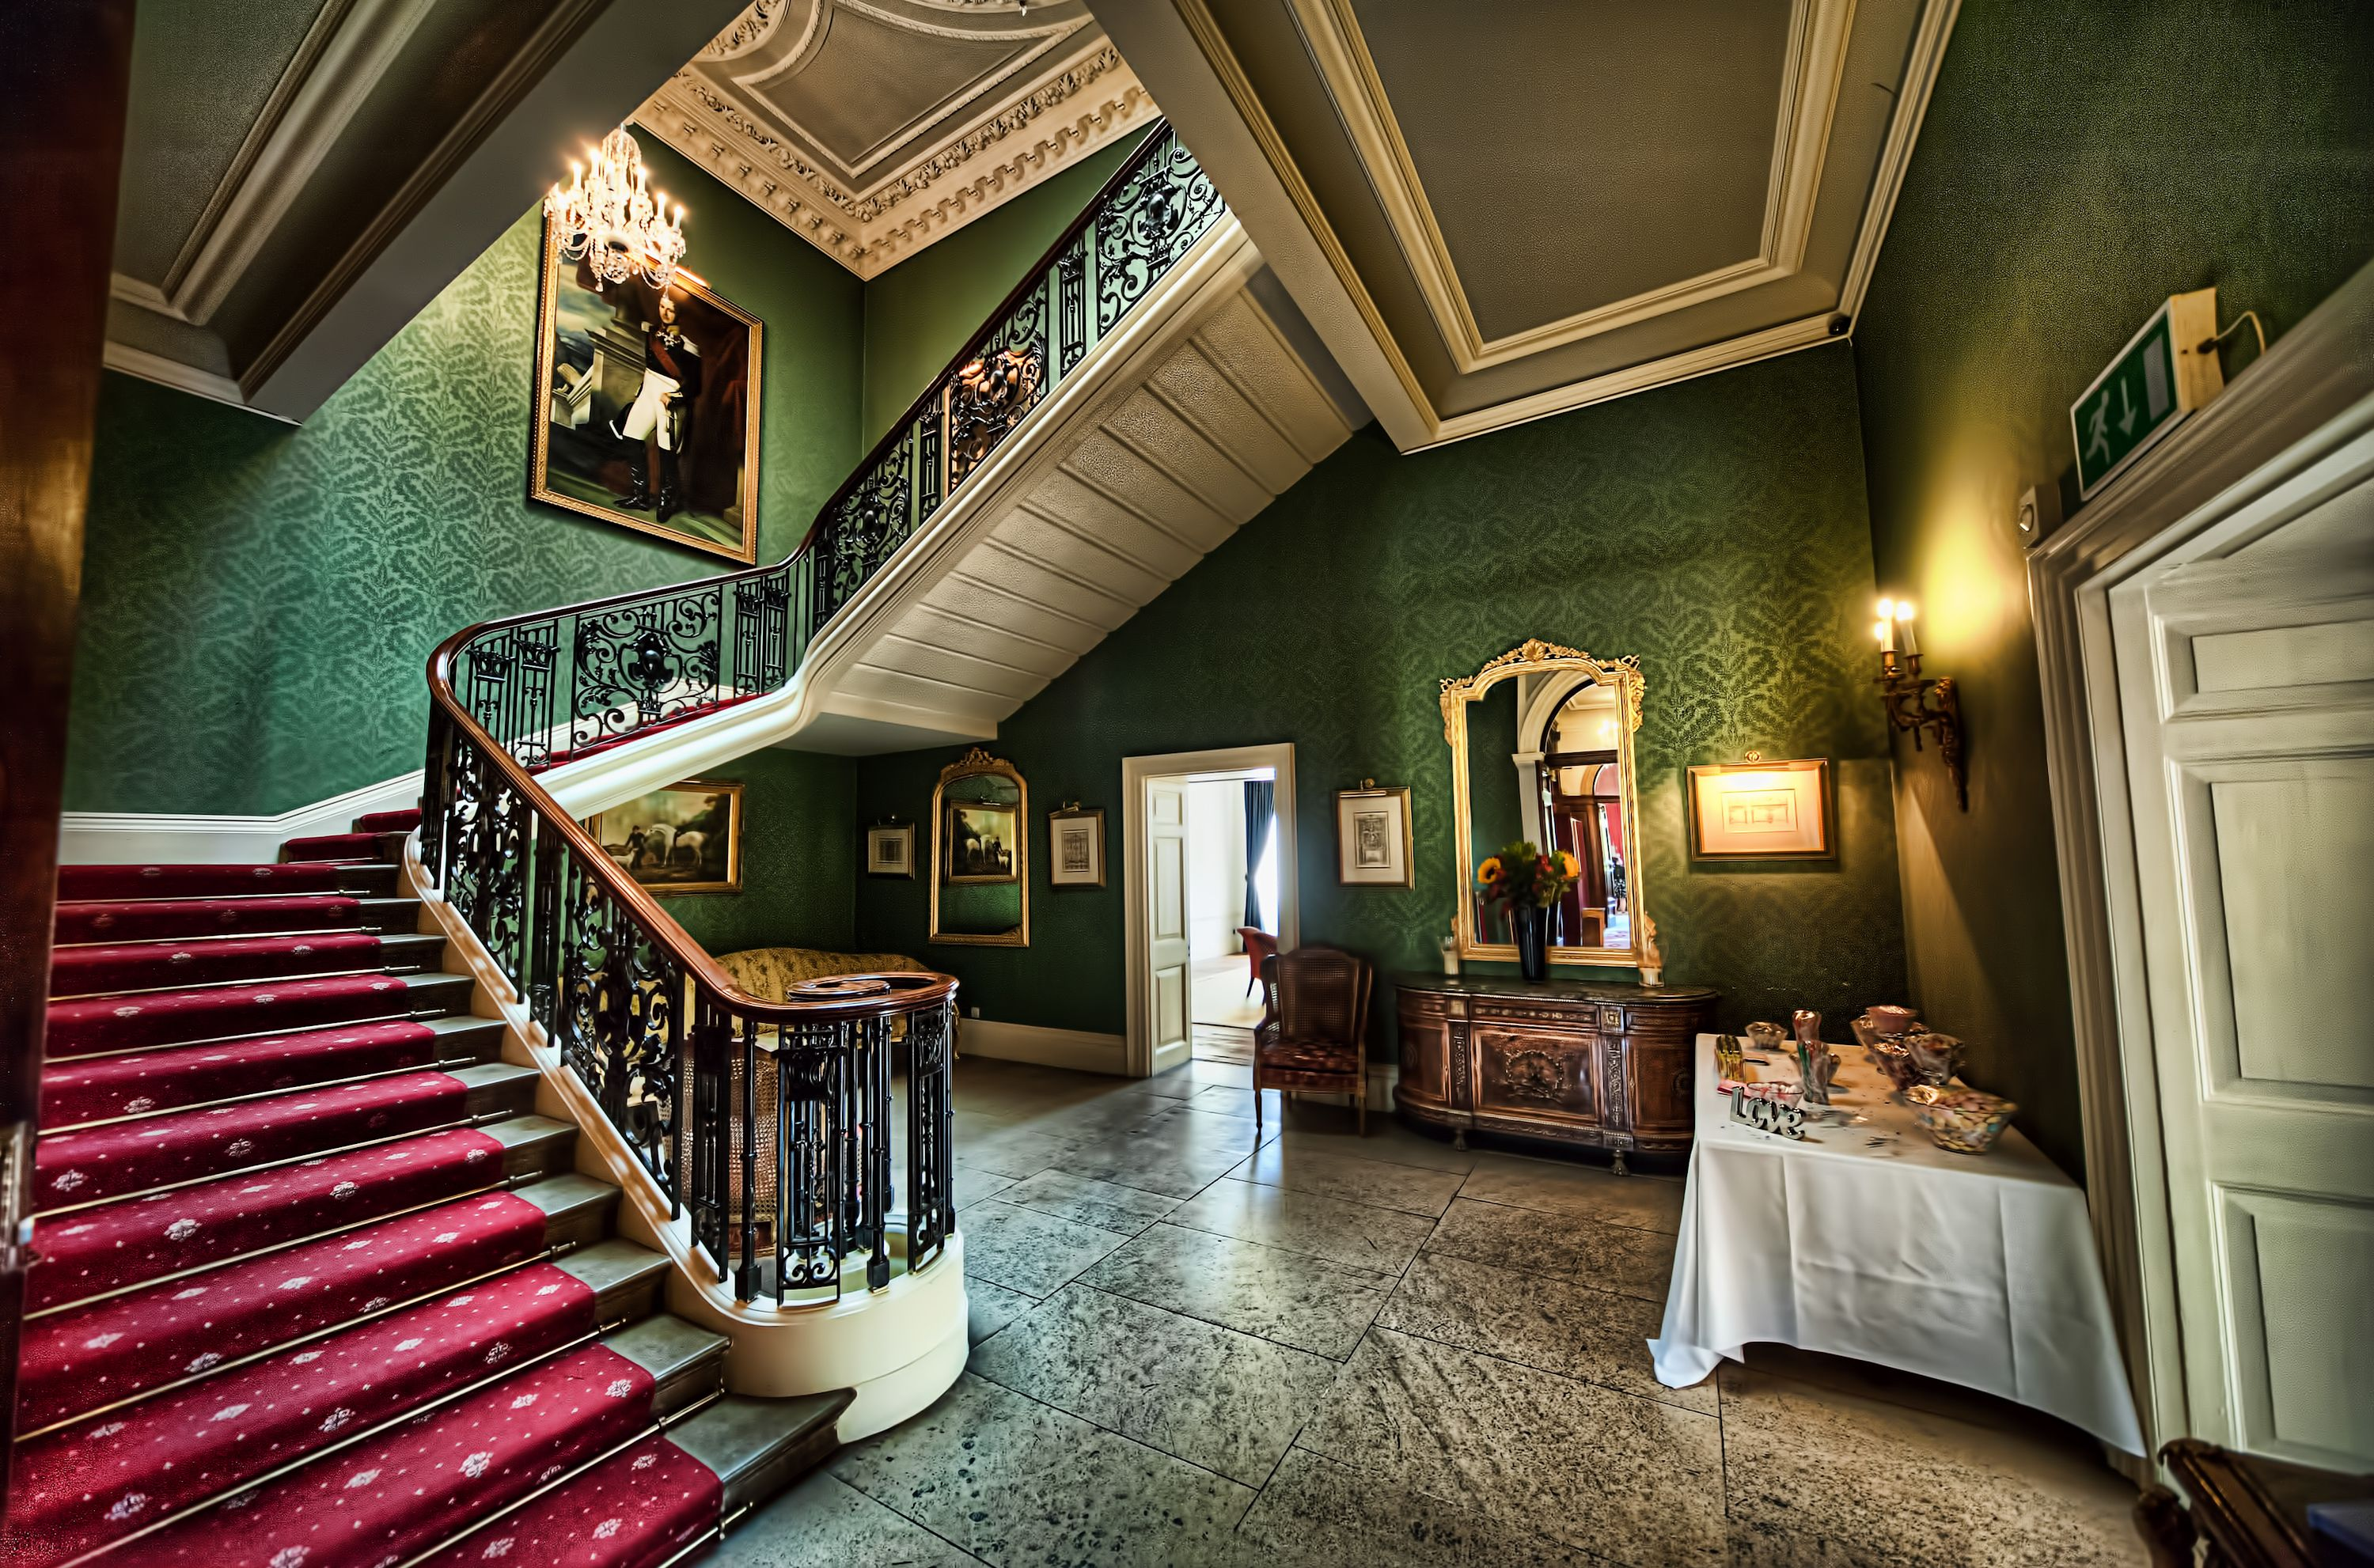 Old Manor House Interior | Inside Addington Palace